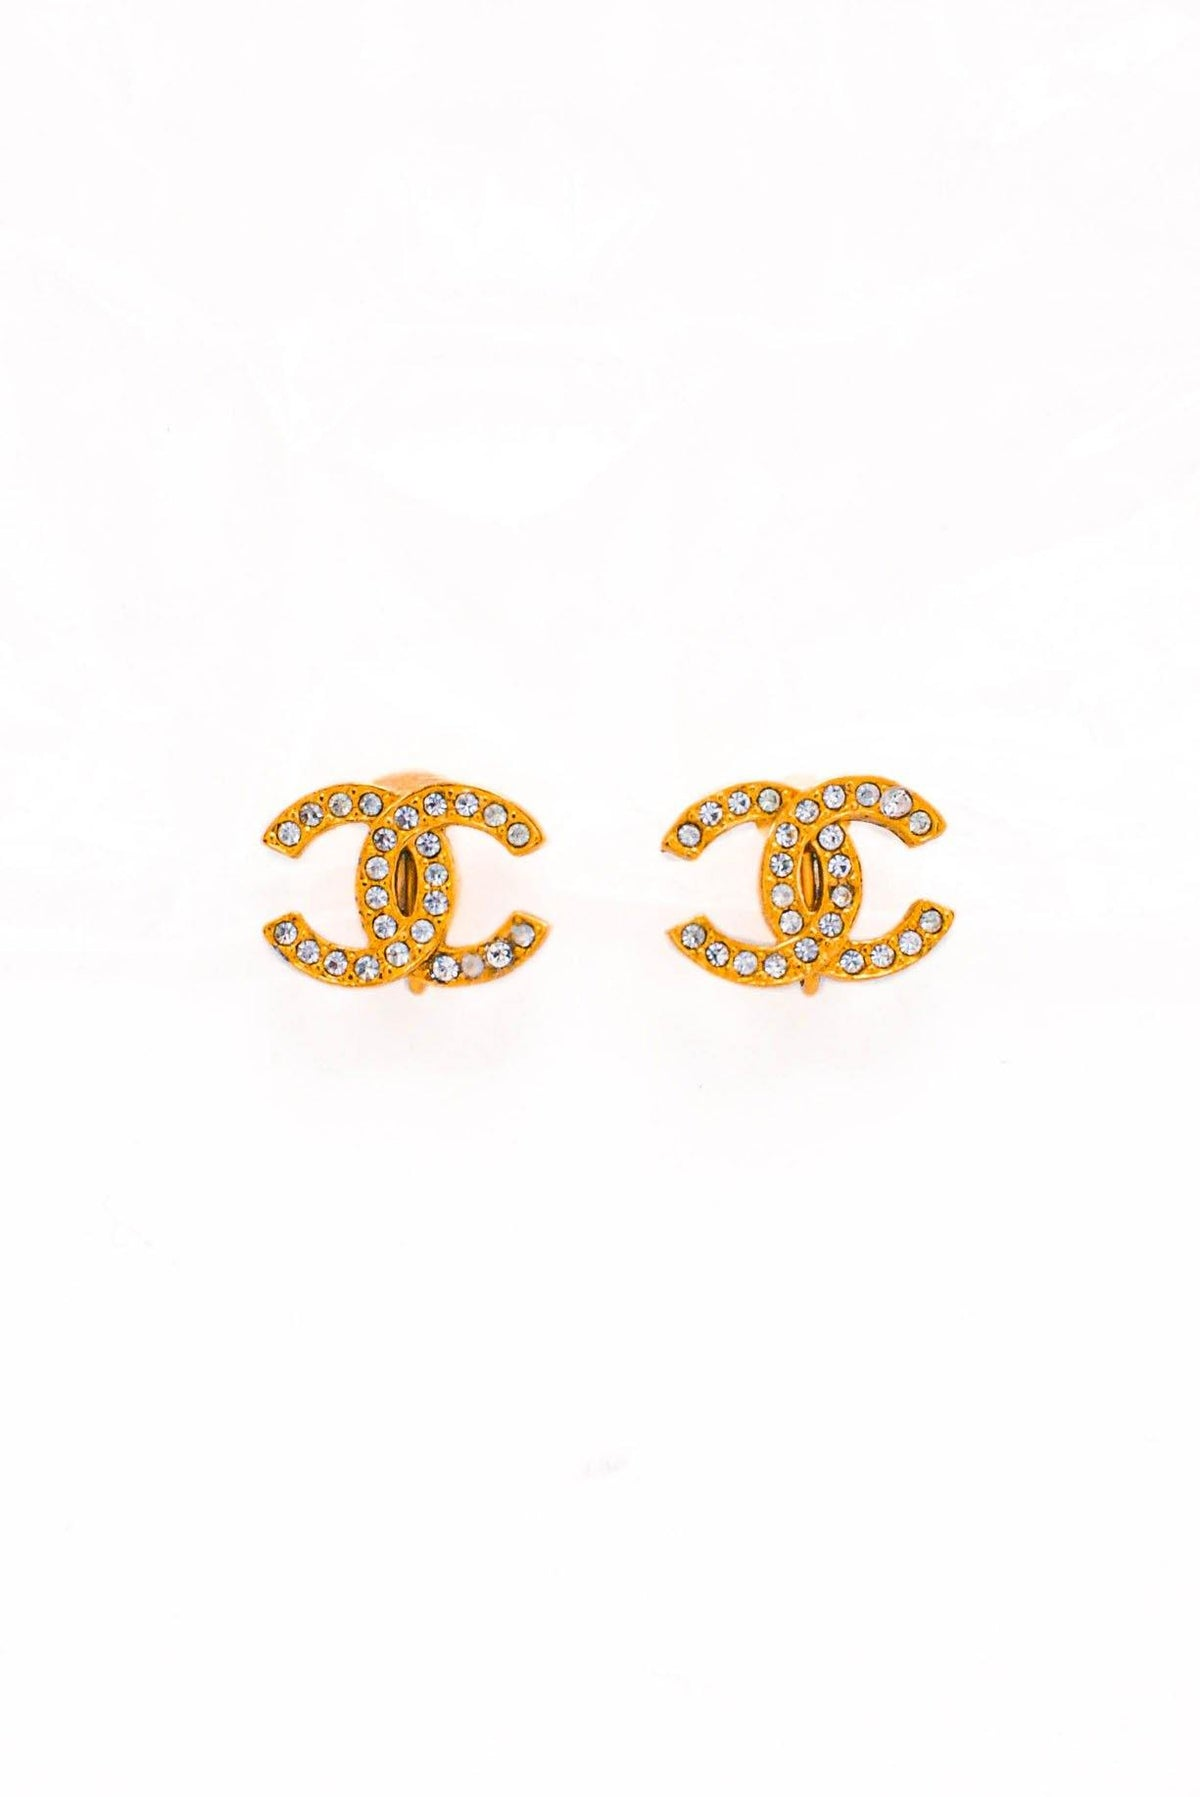 Vintage Chanel CC Rhinestone Clip-on Earrings from Sweet and Spark